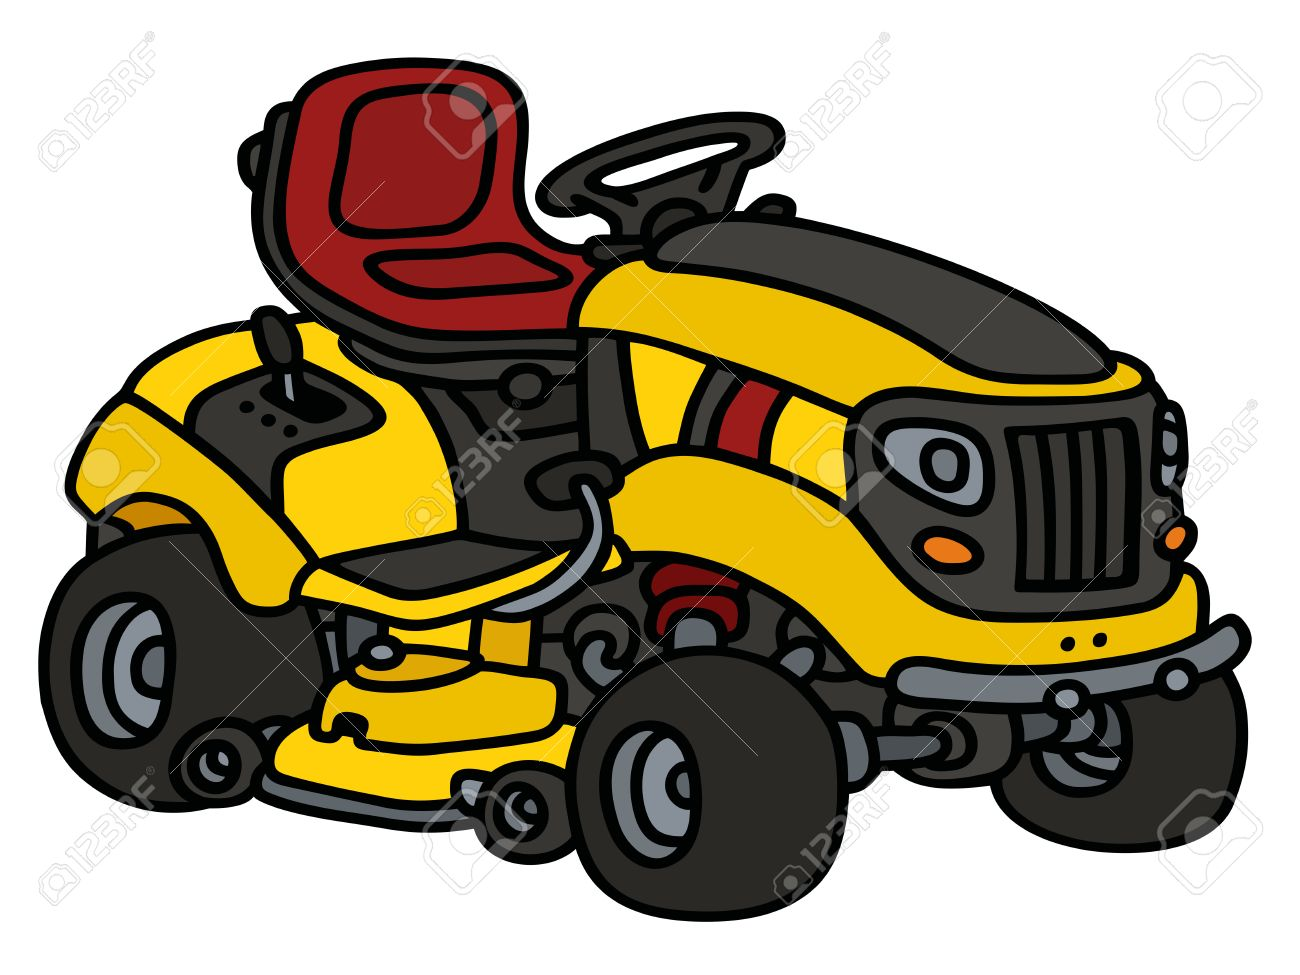 Riding Lawn Mower Drawing At Getdrawings Com